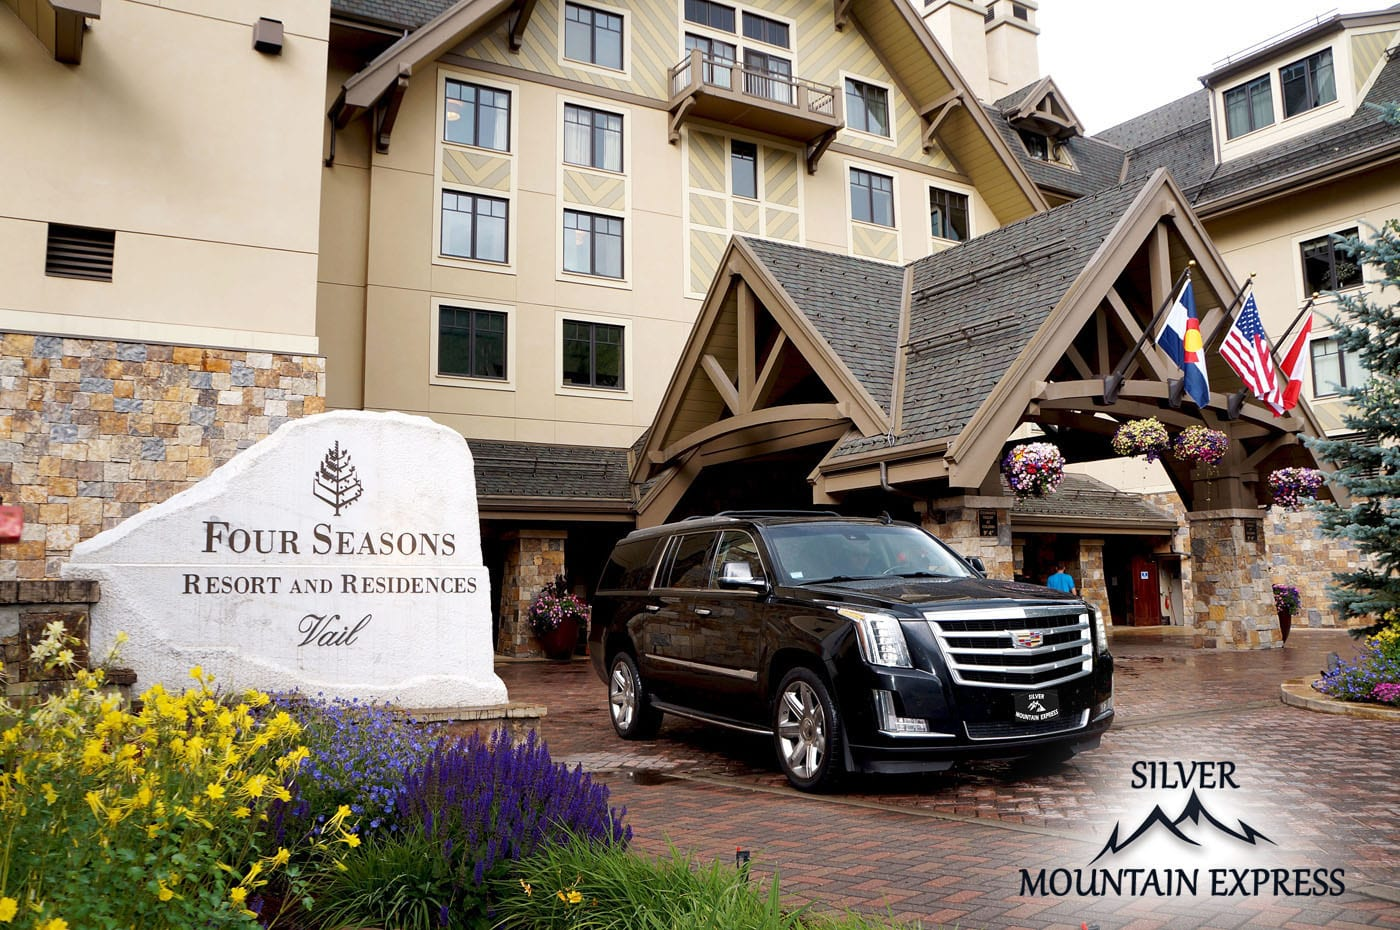 Silver Mountain Express Vail Four Seasons Resort